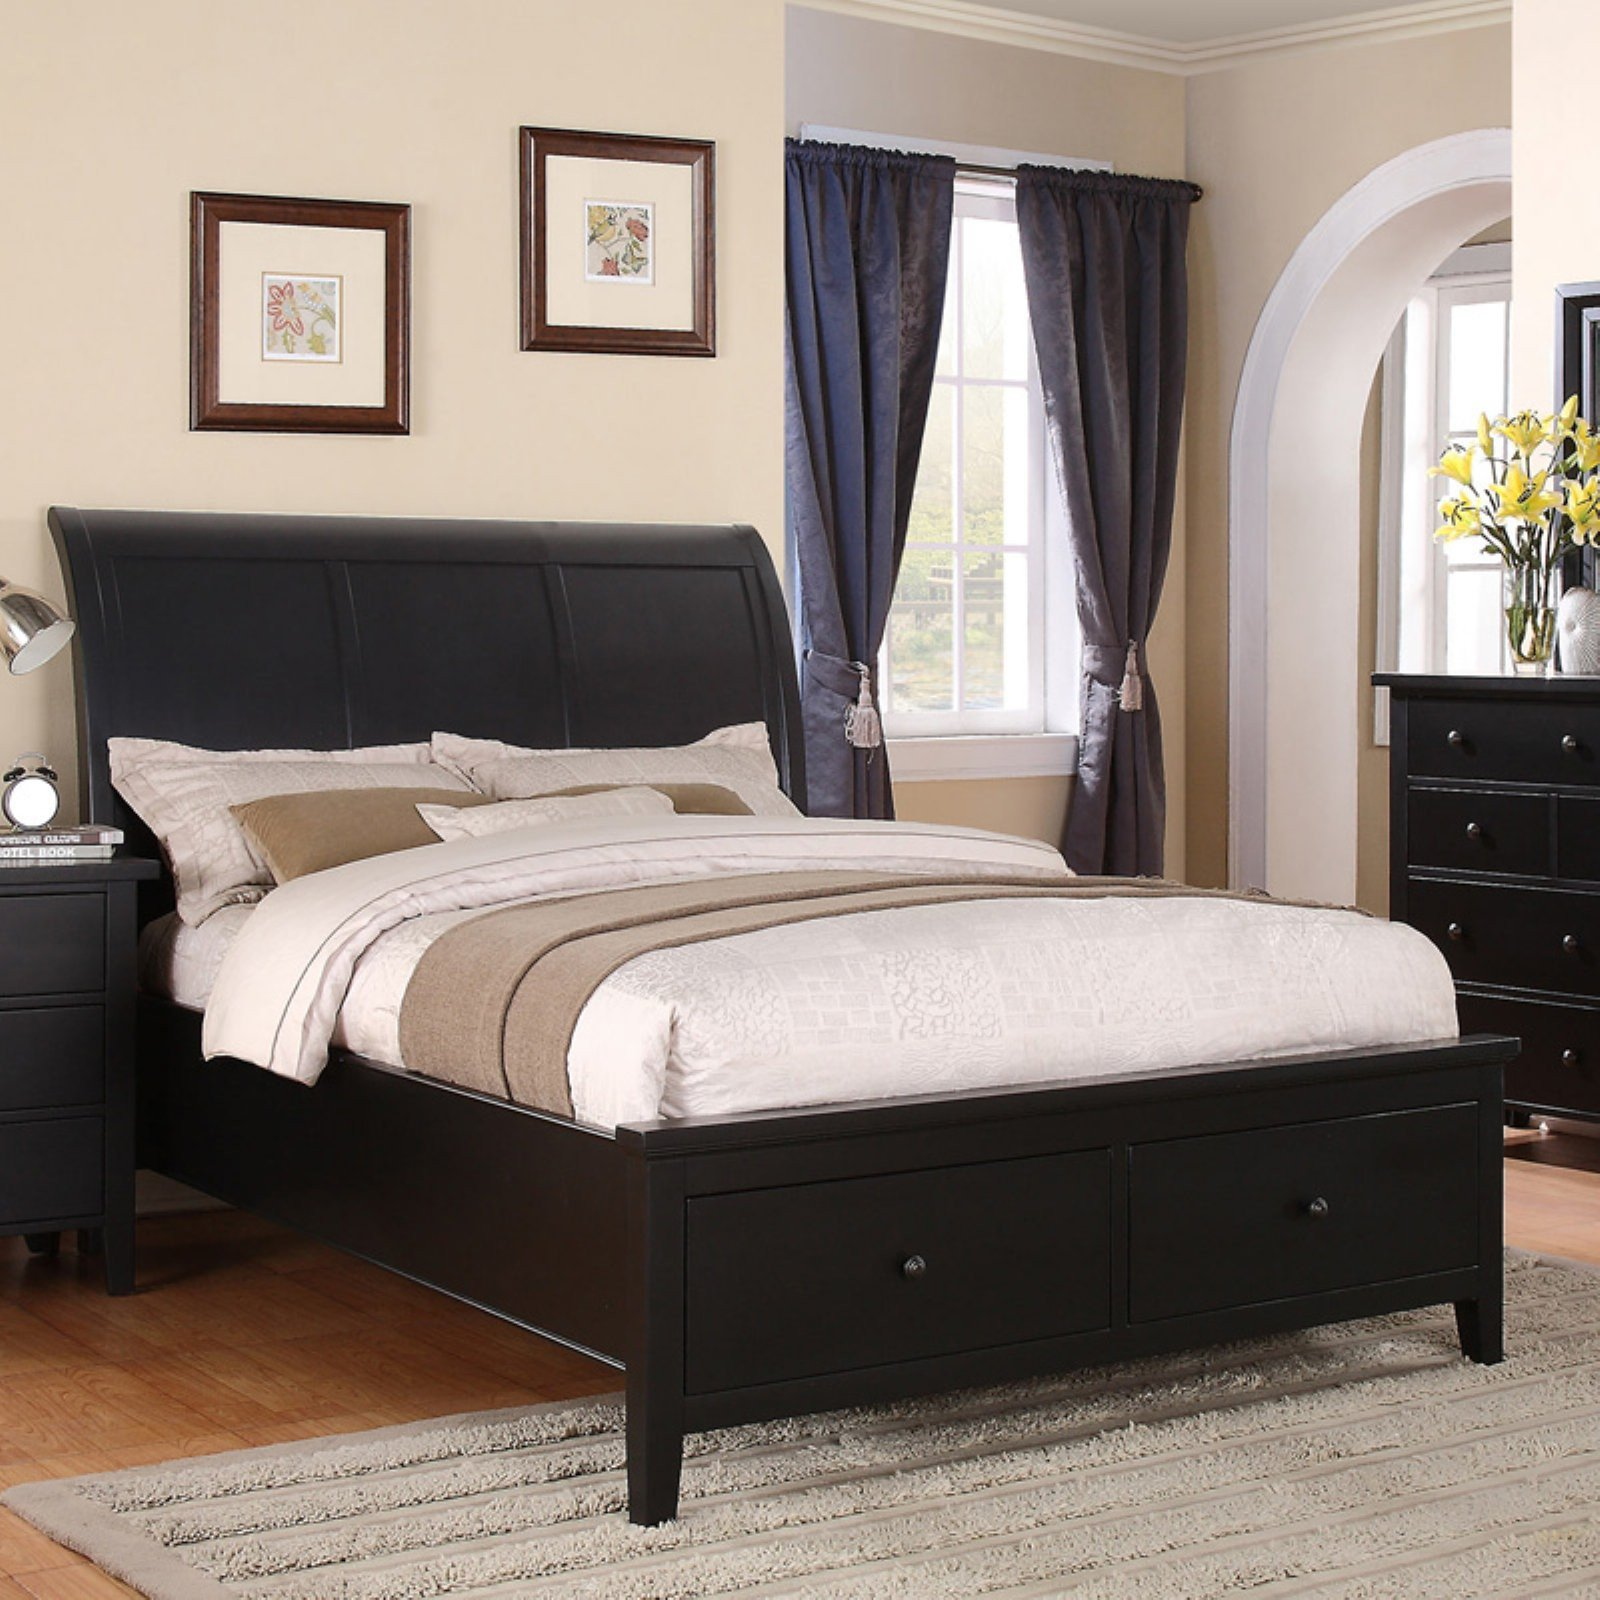 Queen Size Bedroom Suite Fresh Winners Ly Vintage Storage Sleigh Bed Size Queen